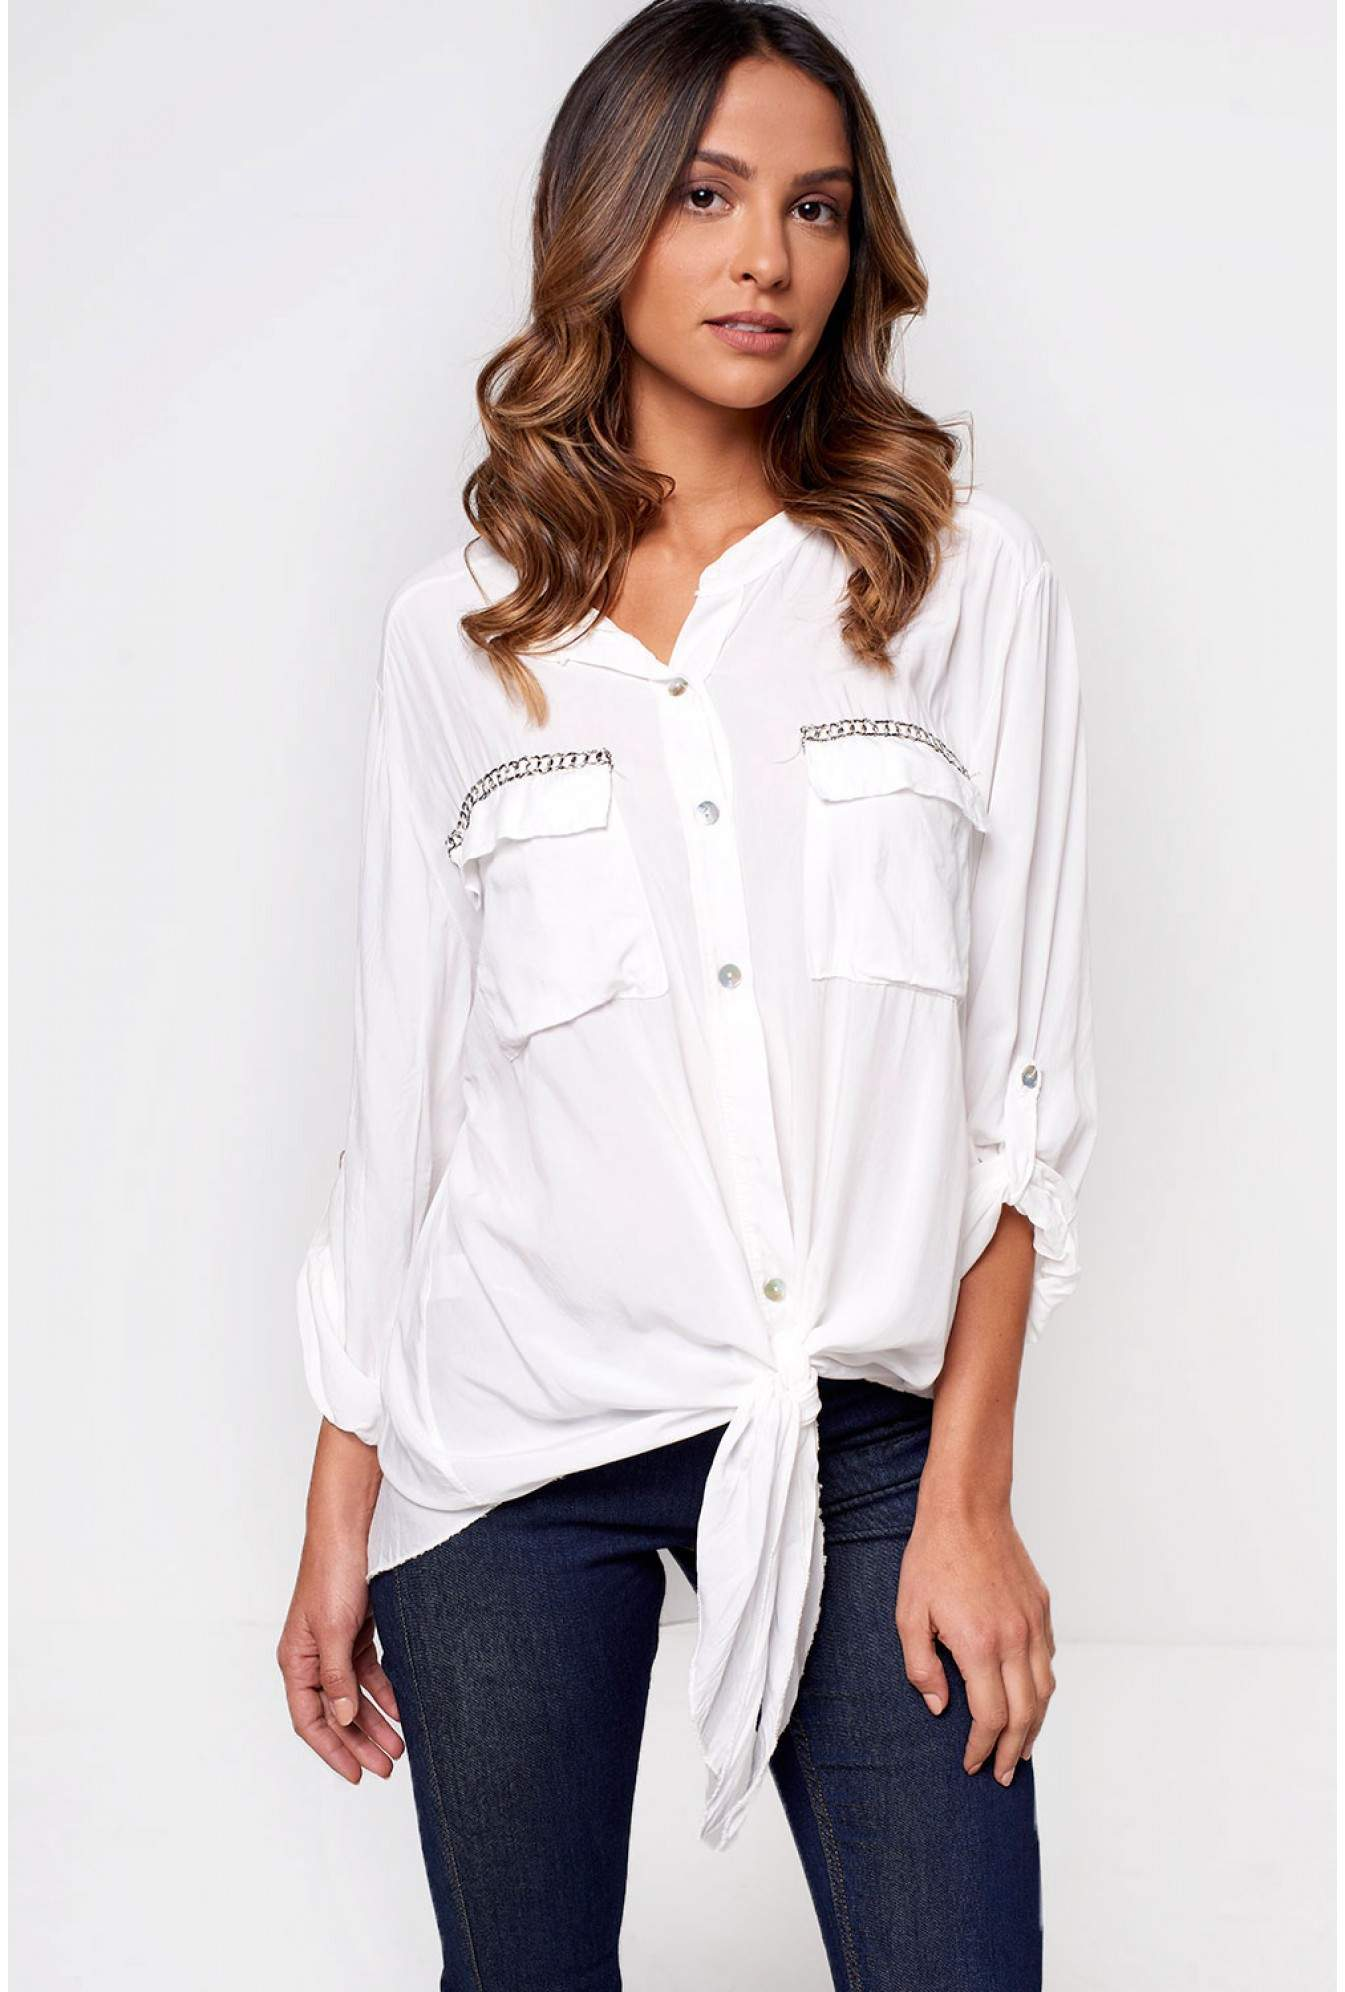 b9c67b48768 Paradiso Carrie Long Sleeve Shirt in White | iCLOTHING